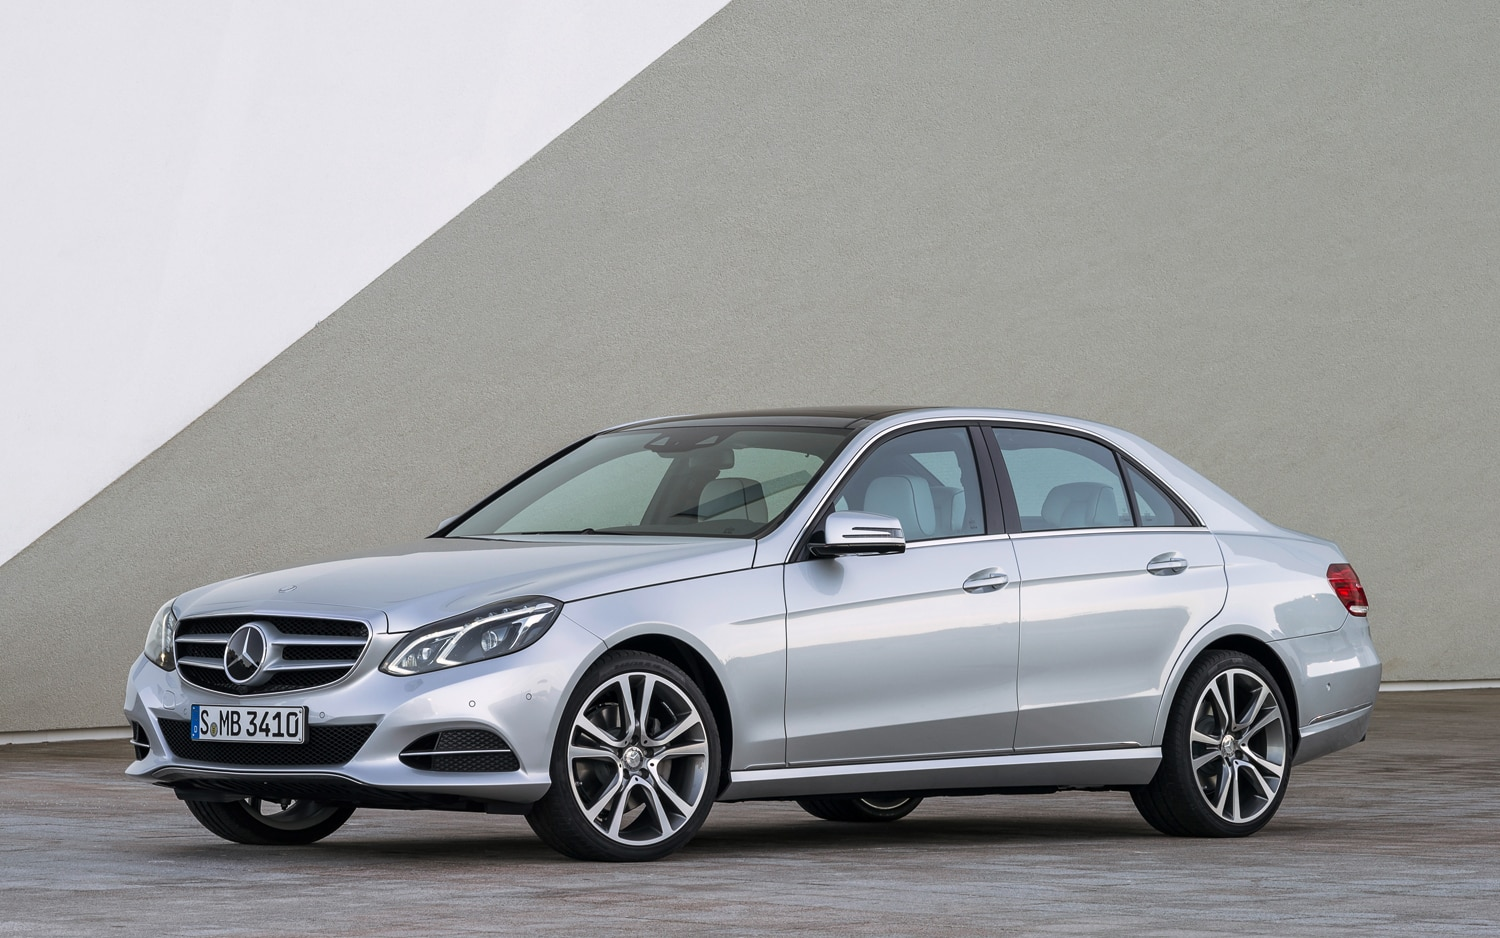 2014 Mercedes Benz E Class Sedan Front Three Quarter1